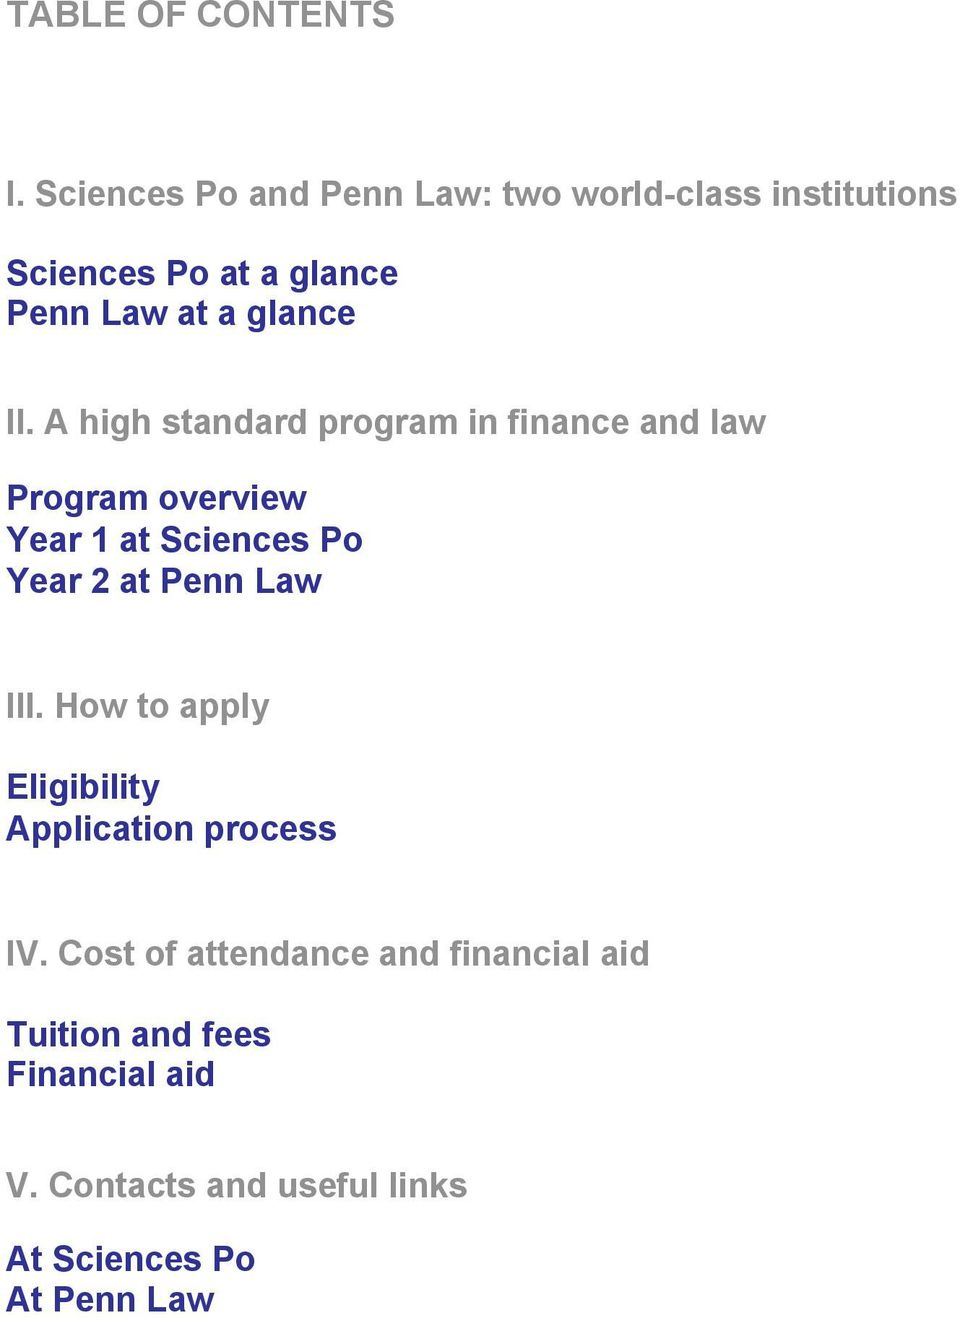 II. A high standard program in finance and law Program overview Year 1 at Sciences Po Year 2 at Penn